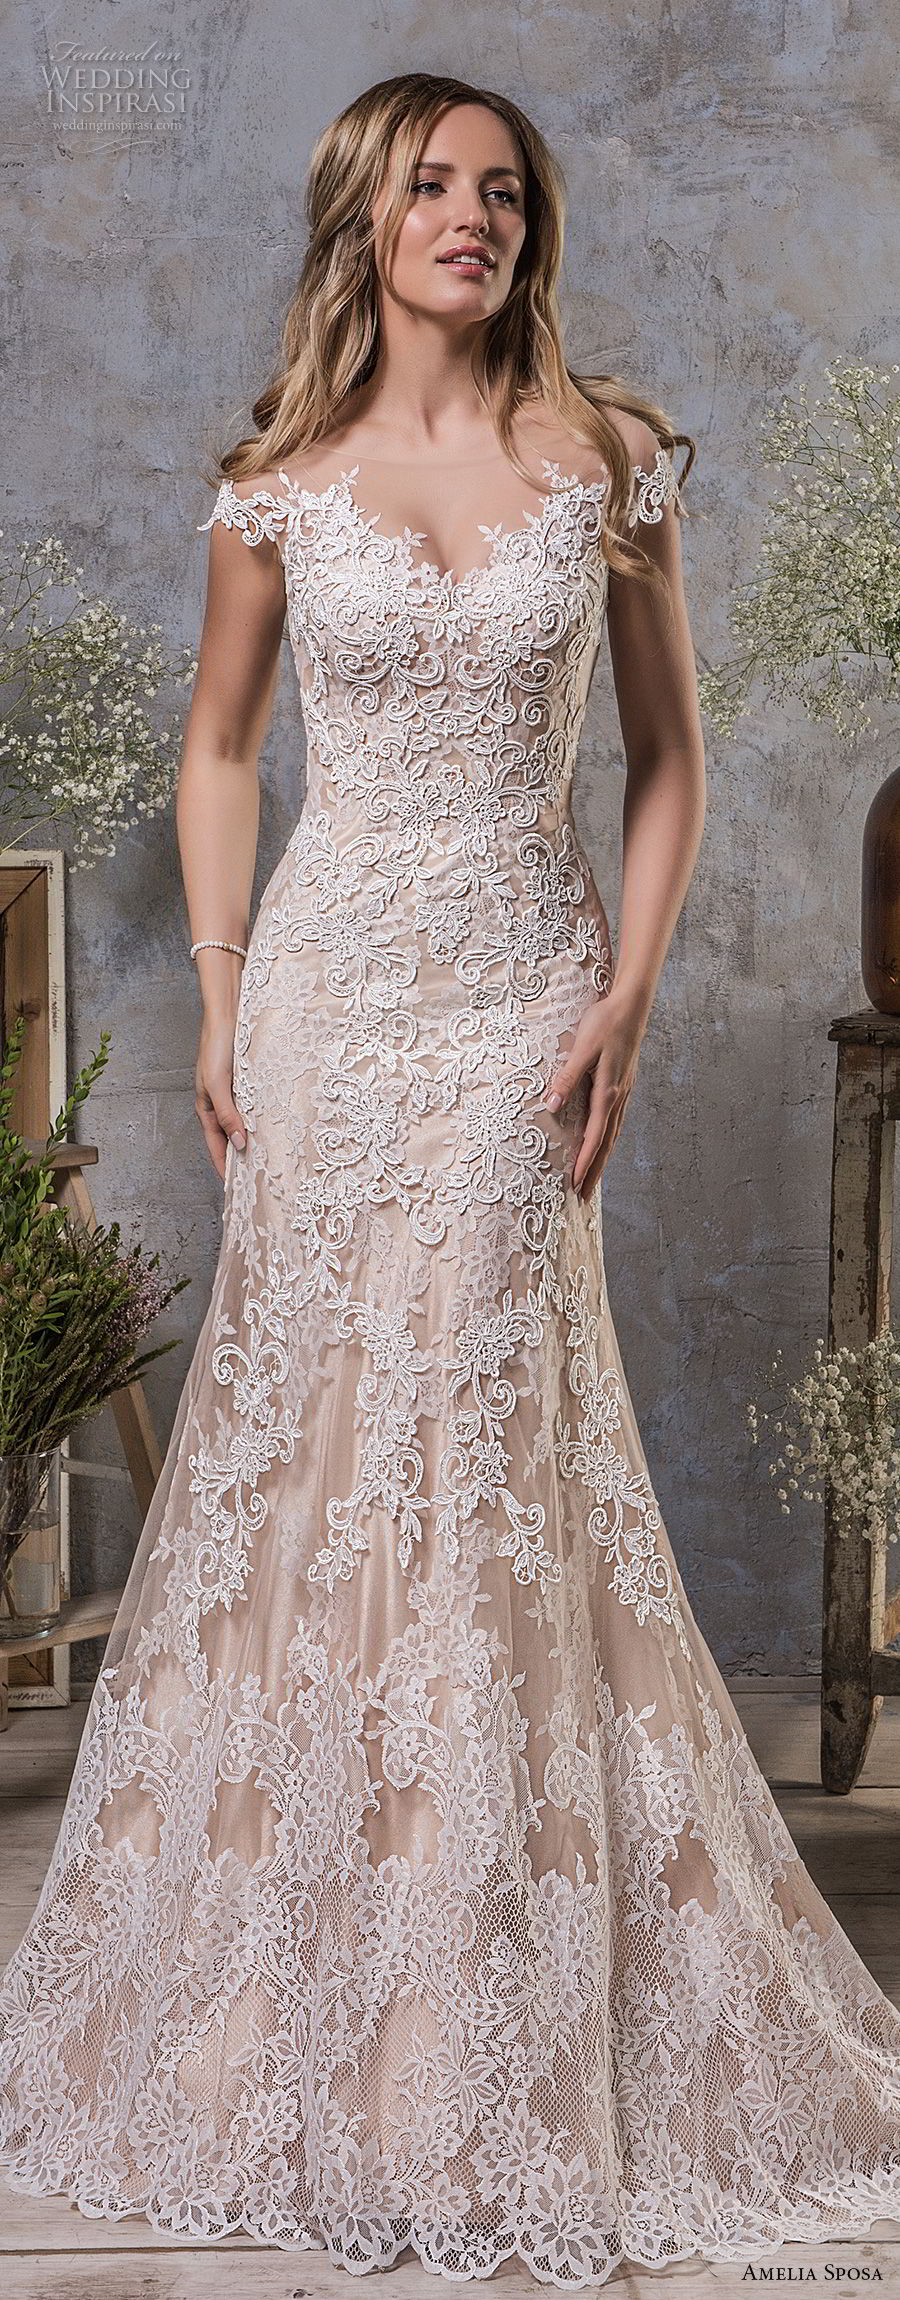 amelia sposa fall 2018 bridal cap sleeves illusion bateau sweetheart neckline full embellishment champagne color a line wedding dress sheer button back medium train (5) mv